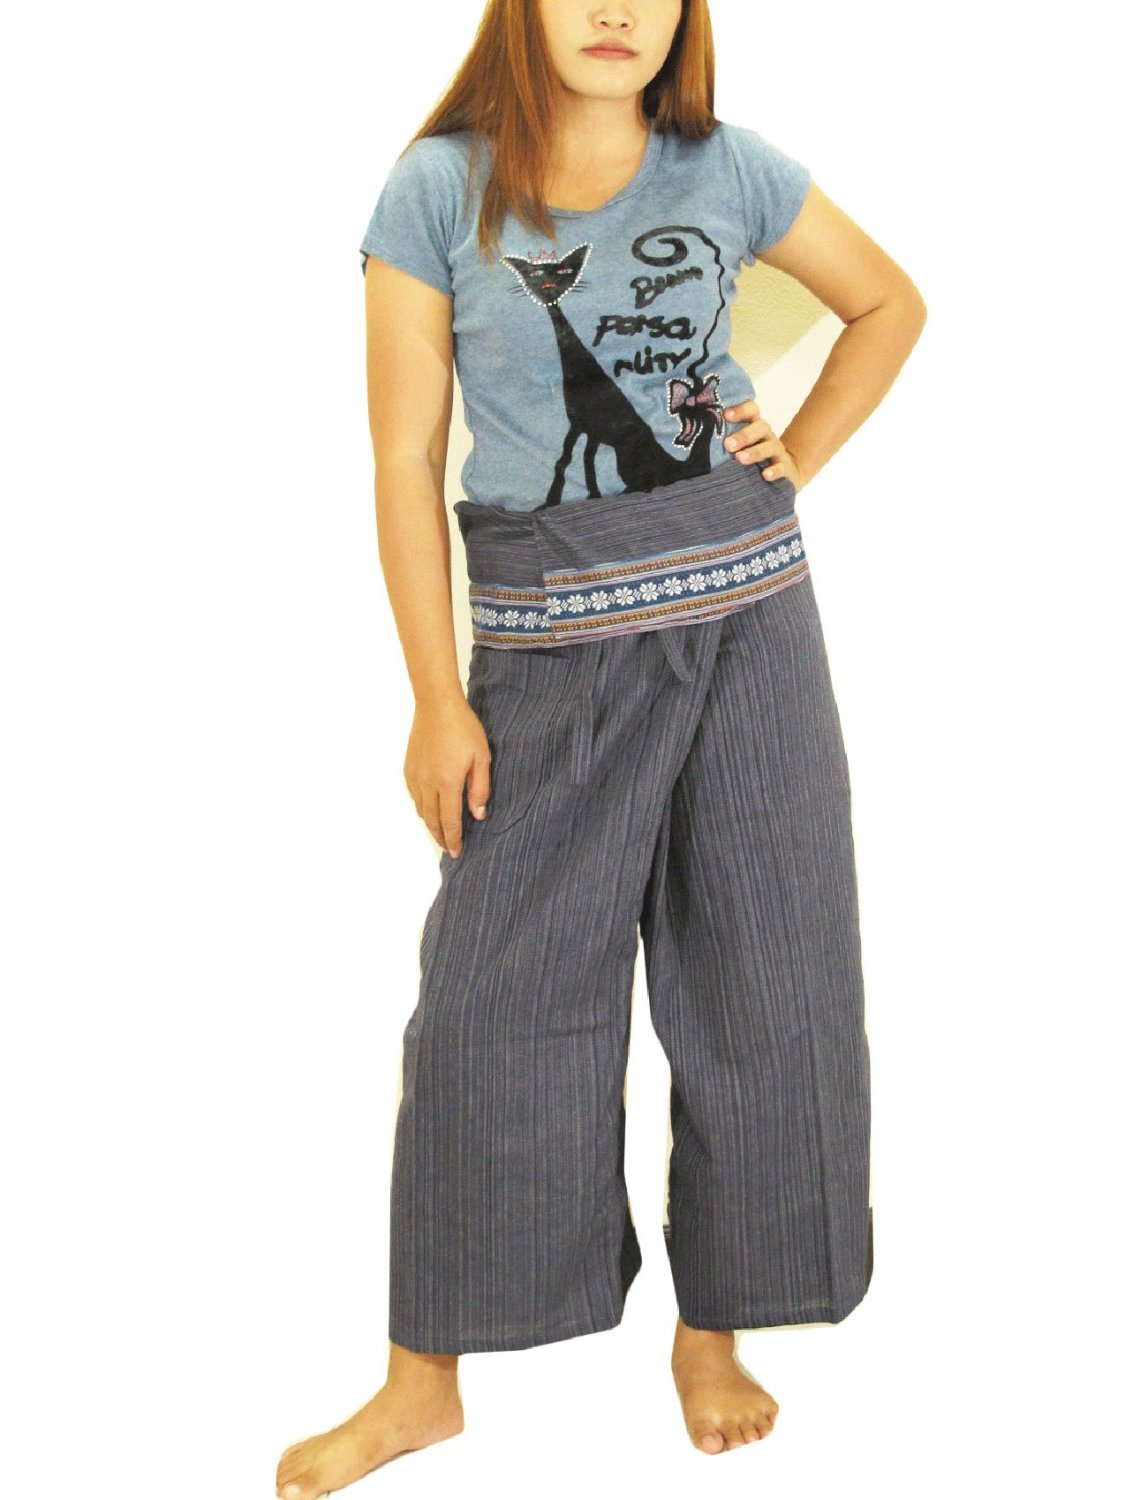 23392fedd3c Get Quotations · 2 TONE Thai Fisherman Pants Yoga Trousers FREE SIZE Plus  Size Cotton